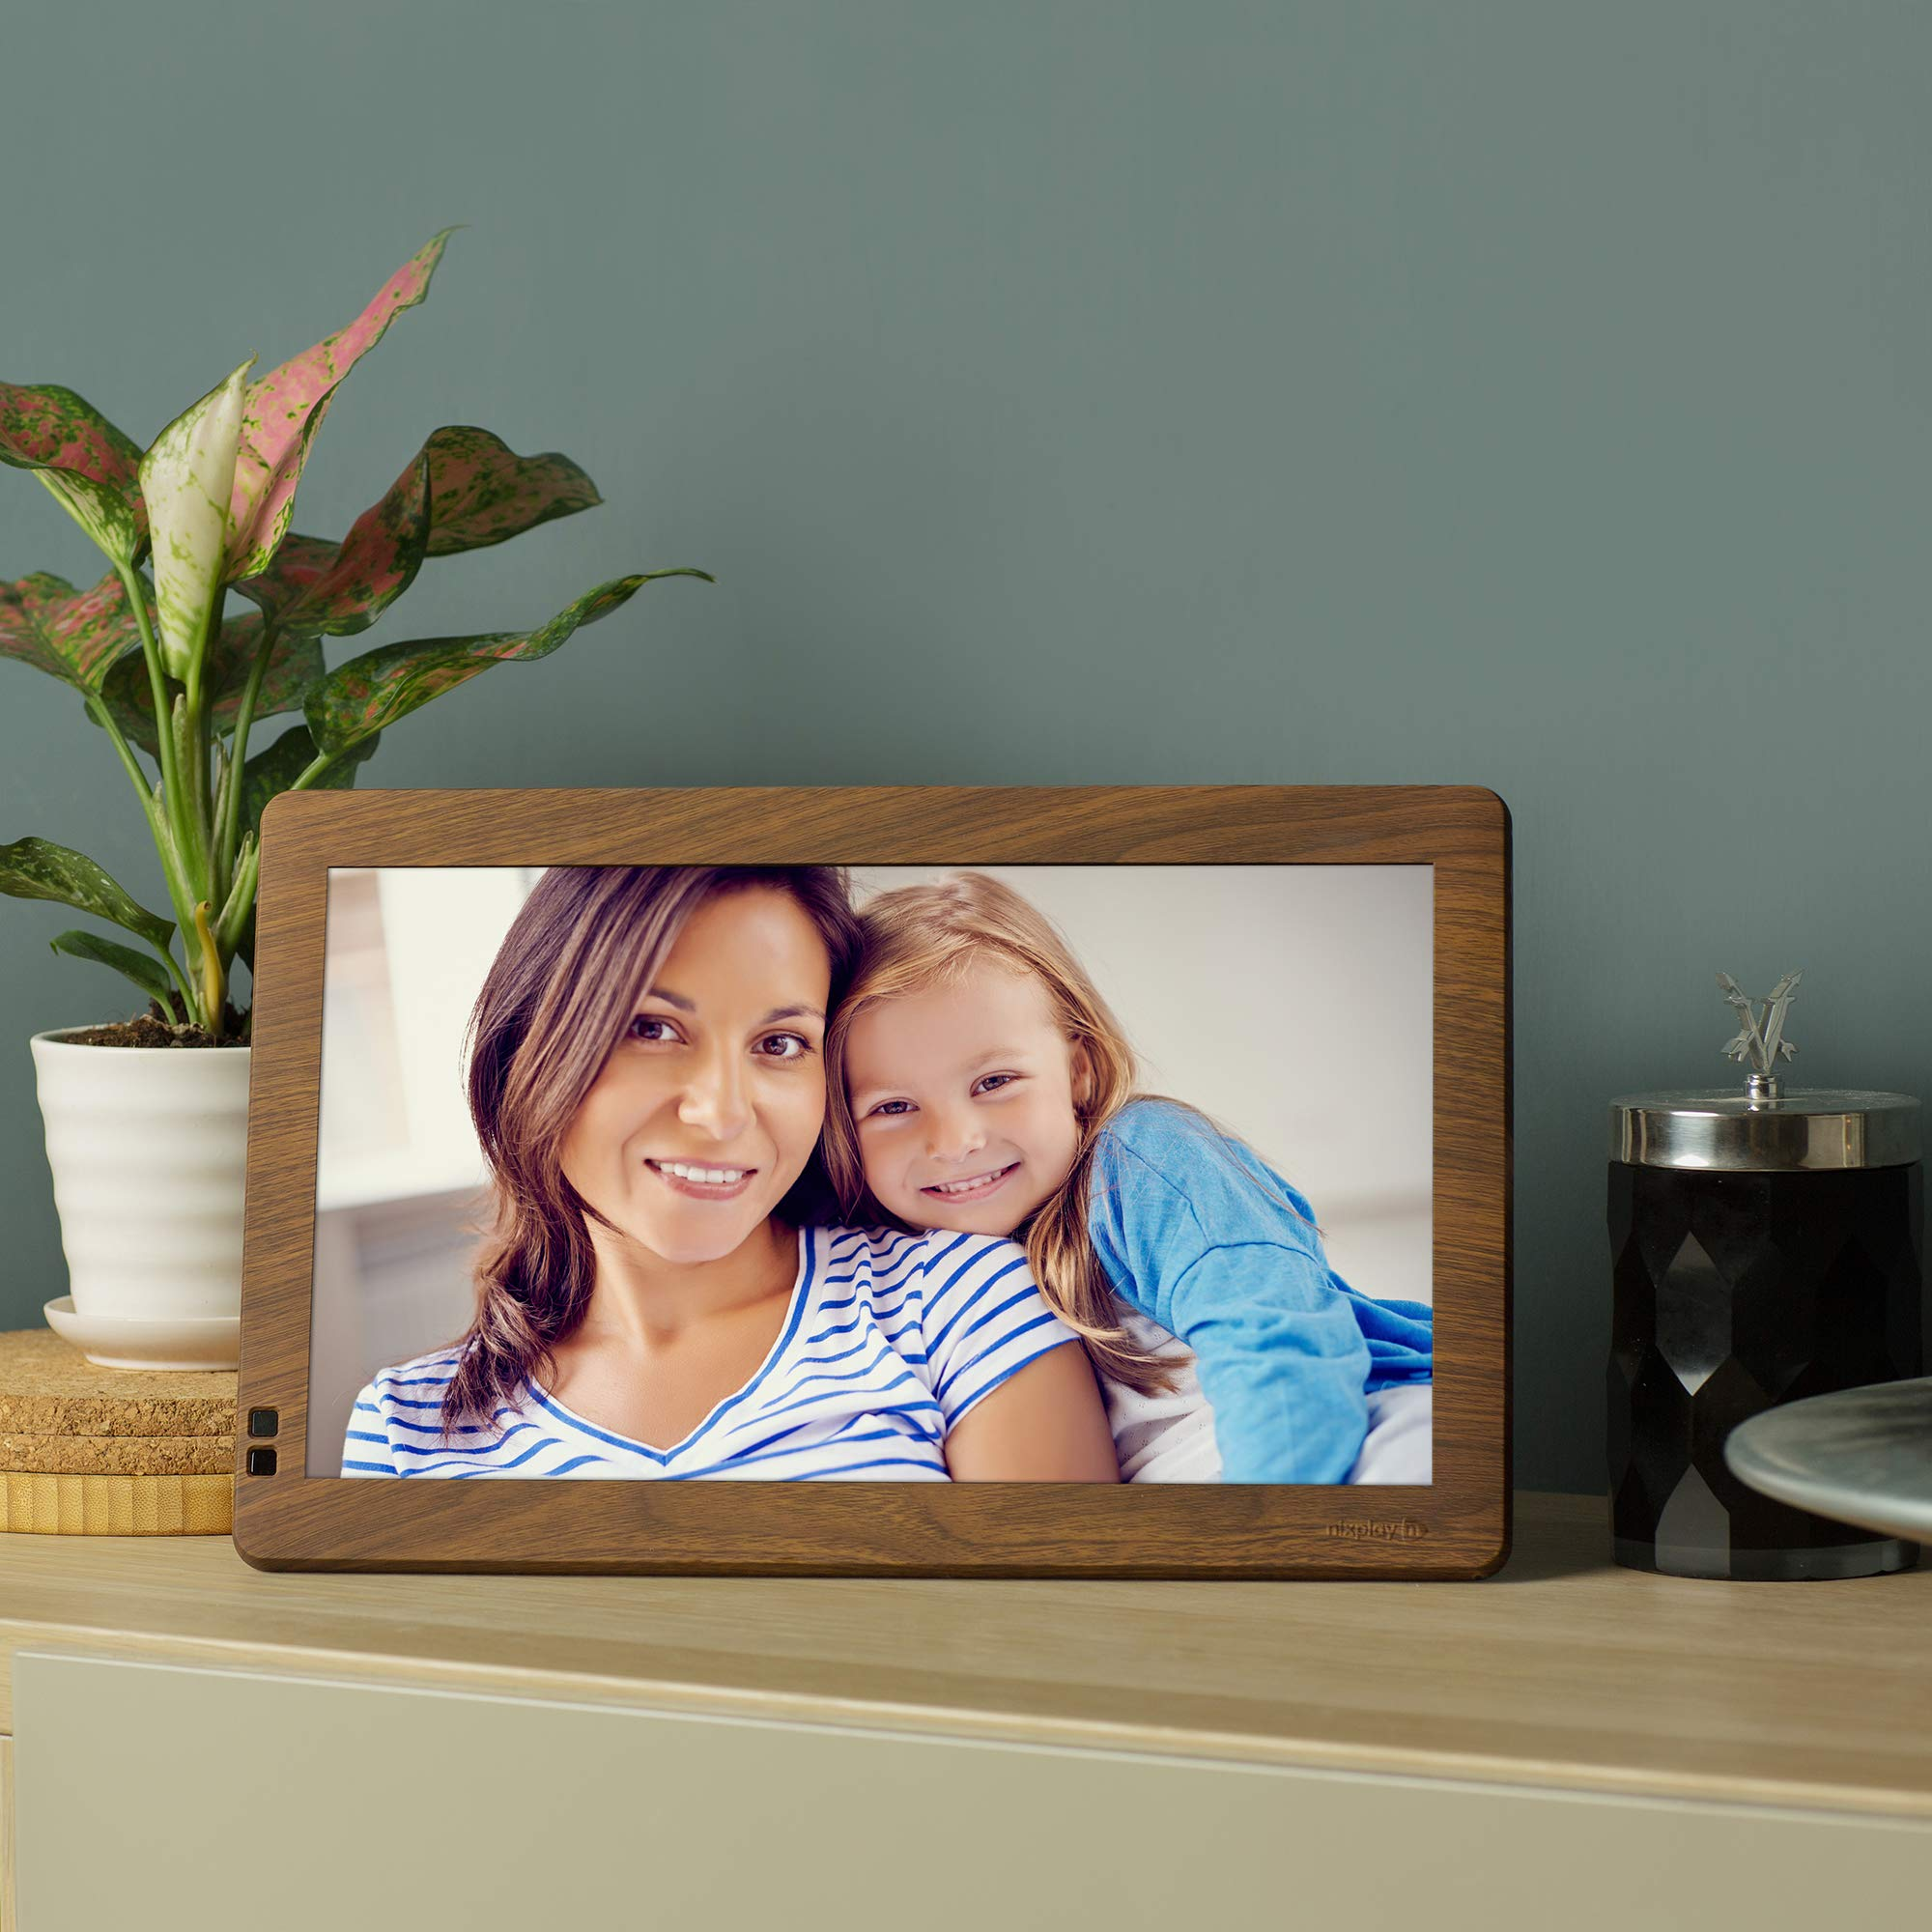 Nixplay Seed 10.1 Inch Widescreen Digital WiFi Photo Frame W10B Wood Effect - Digital Picture Frame with IPS Display and 10GB Online Storage, Display and Share Photos via Nixplay Mobile App by nixplay (Image #5)